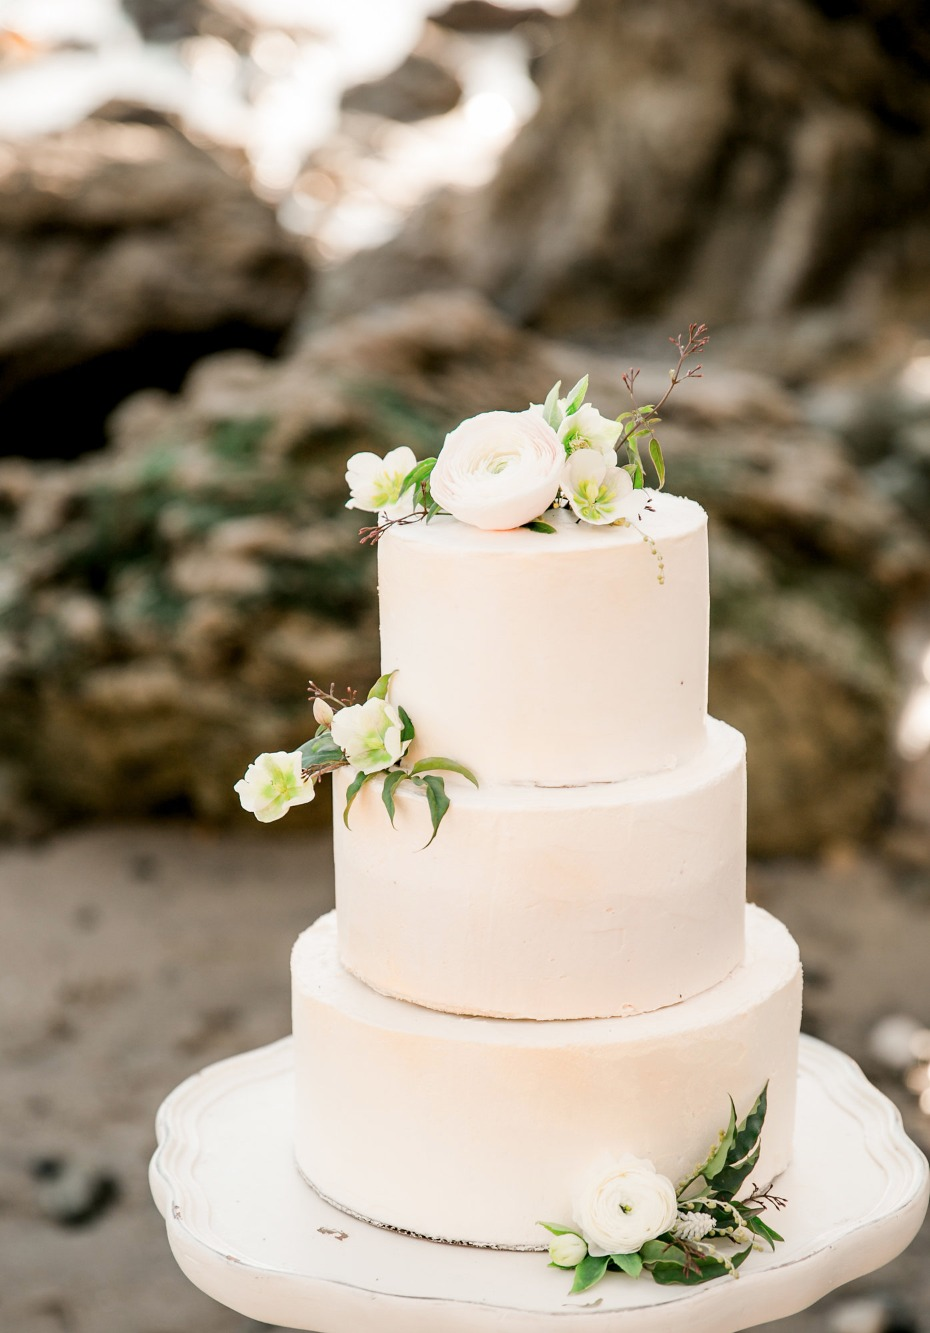 modern chic wedding cake topped with flowers